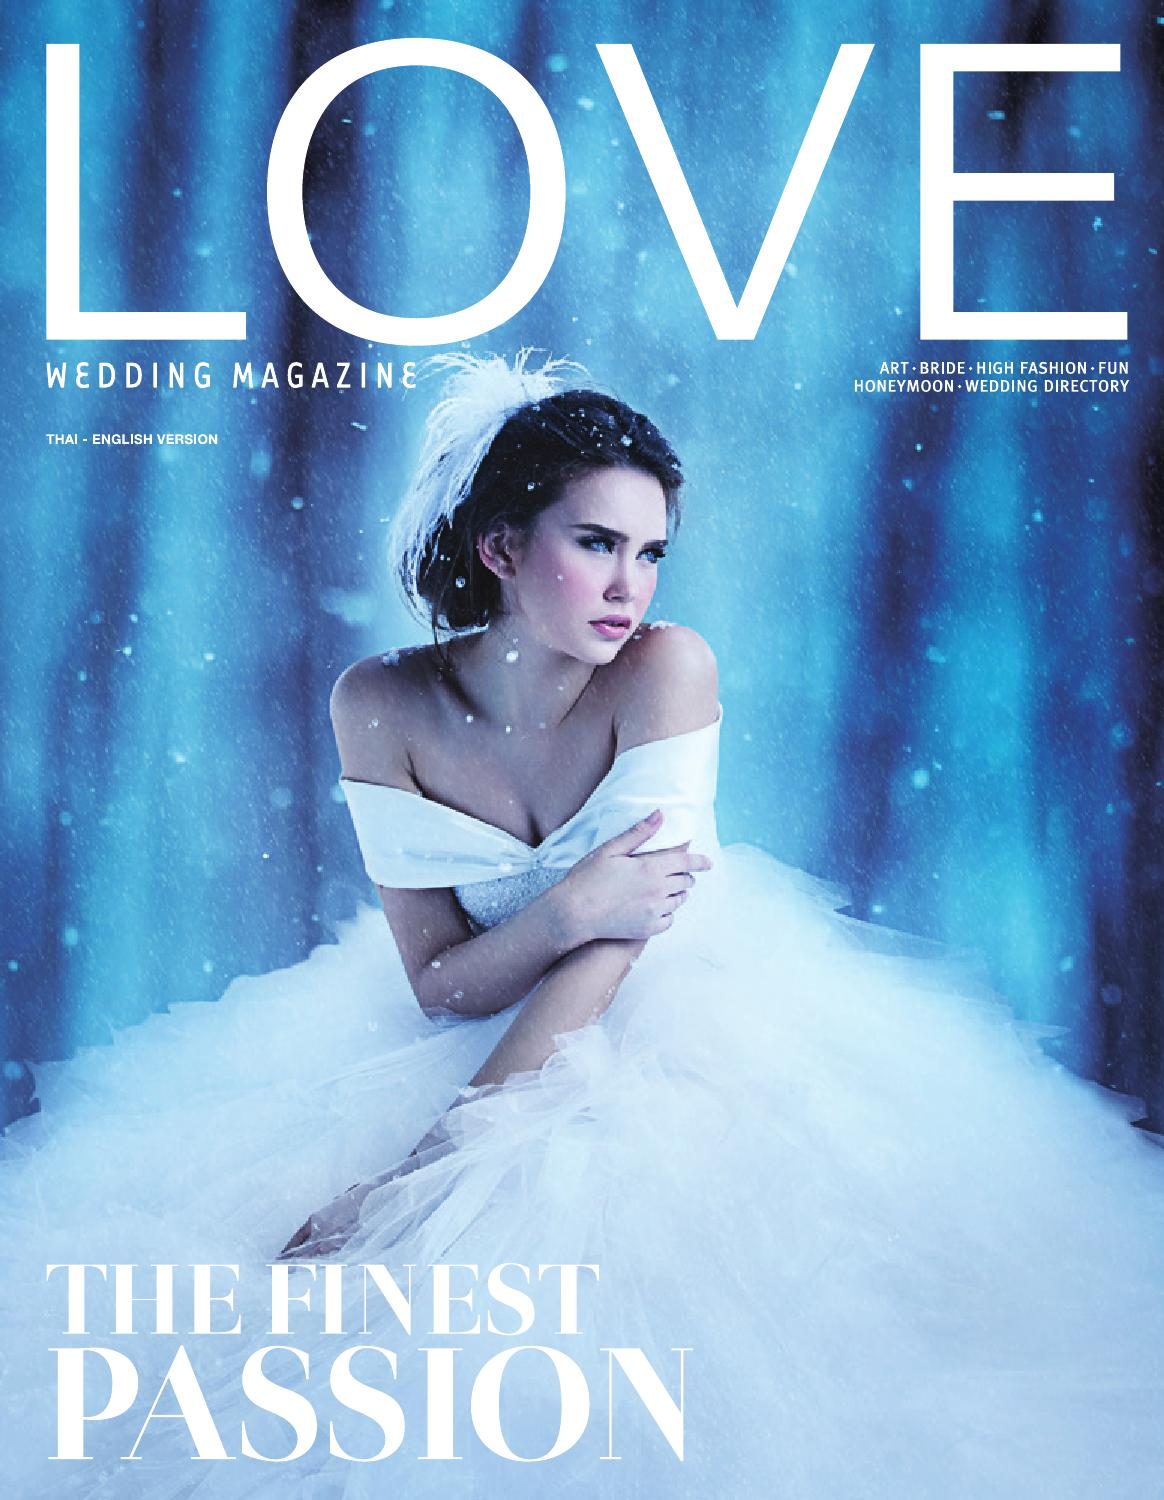 Love Wedding Magazine Issue 03 By